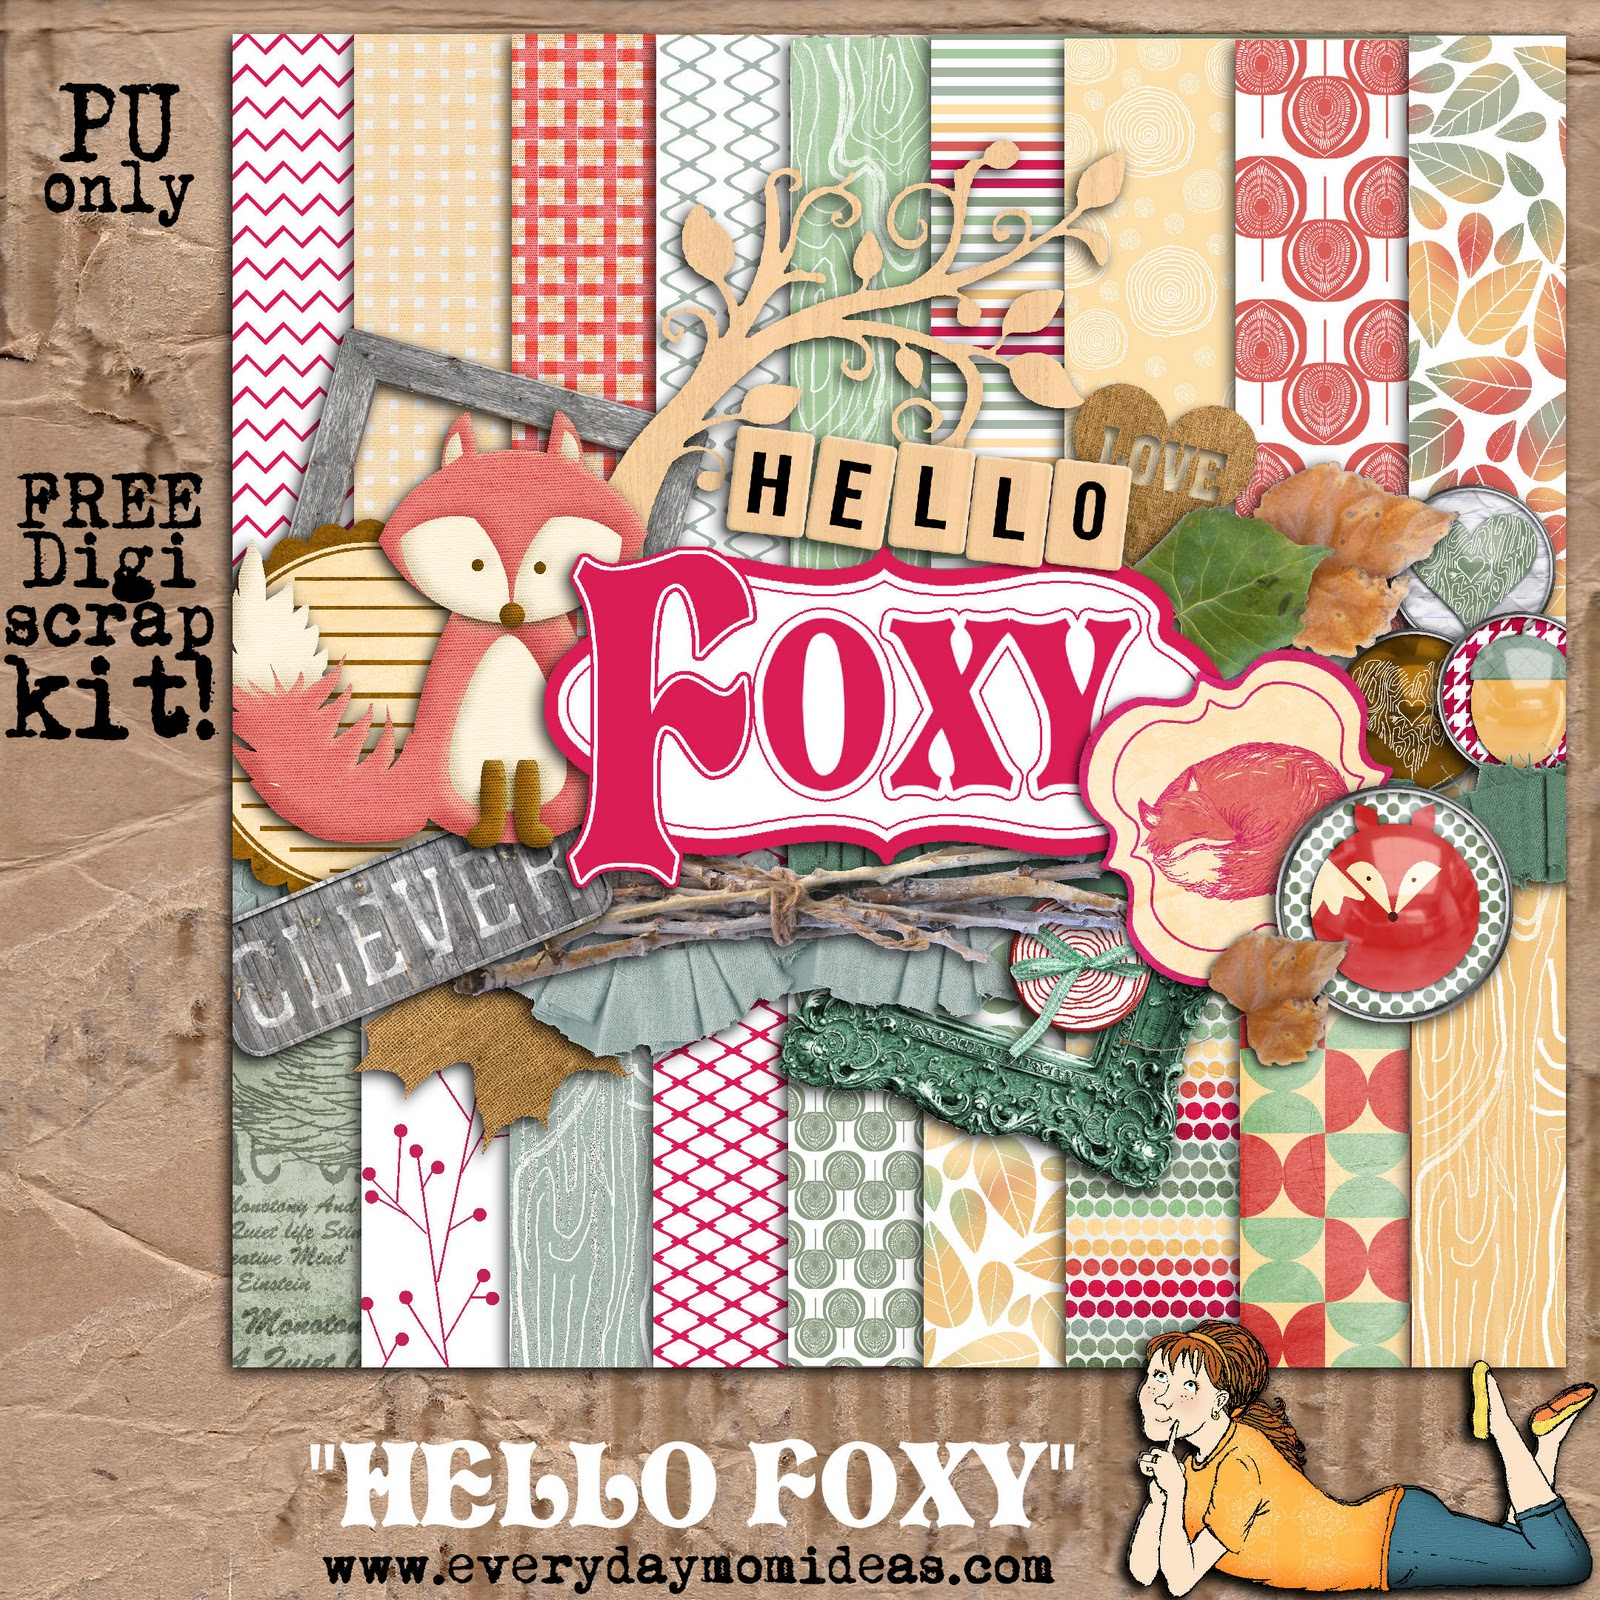 Digital scrapbooking kits free all about scrapbooking ideas - Hello Foxy Free Digital Scrapbooking Kit Everyday Mom Ideas Hello Foxy Free Digital Scrapbooking Kit Salsuba